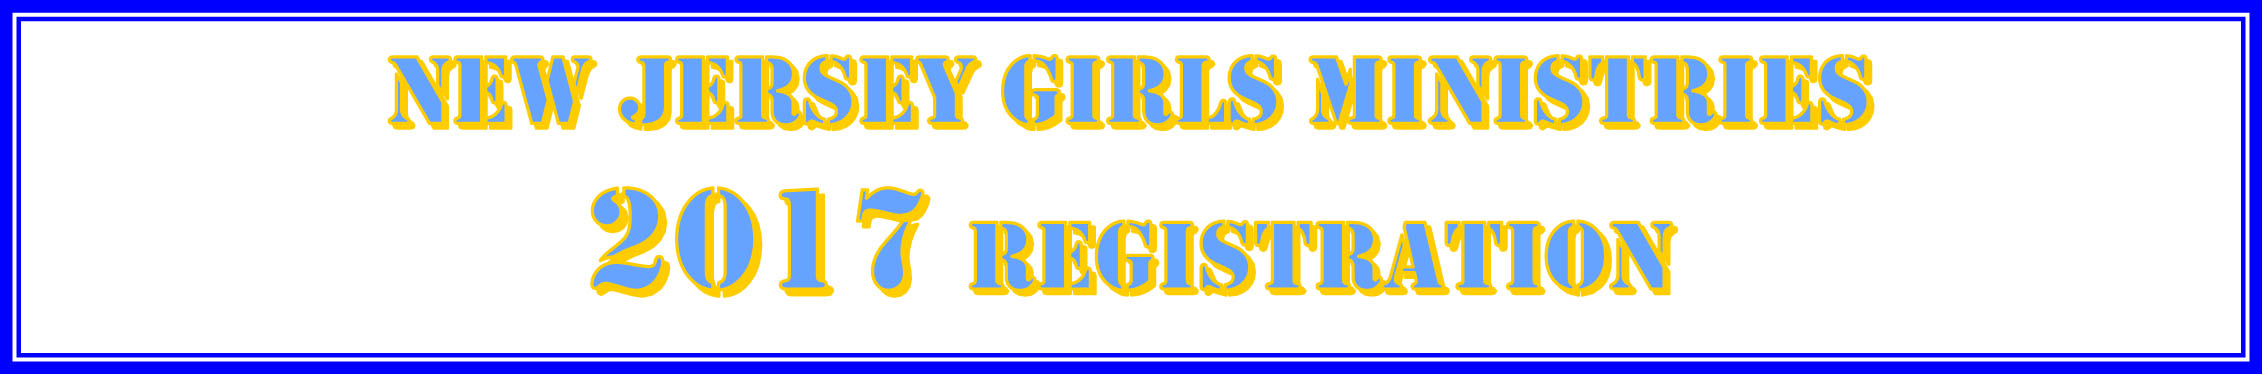 Gm 2017 registration